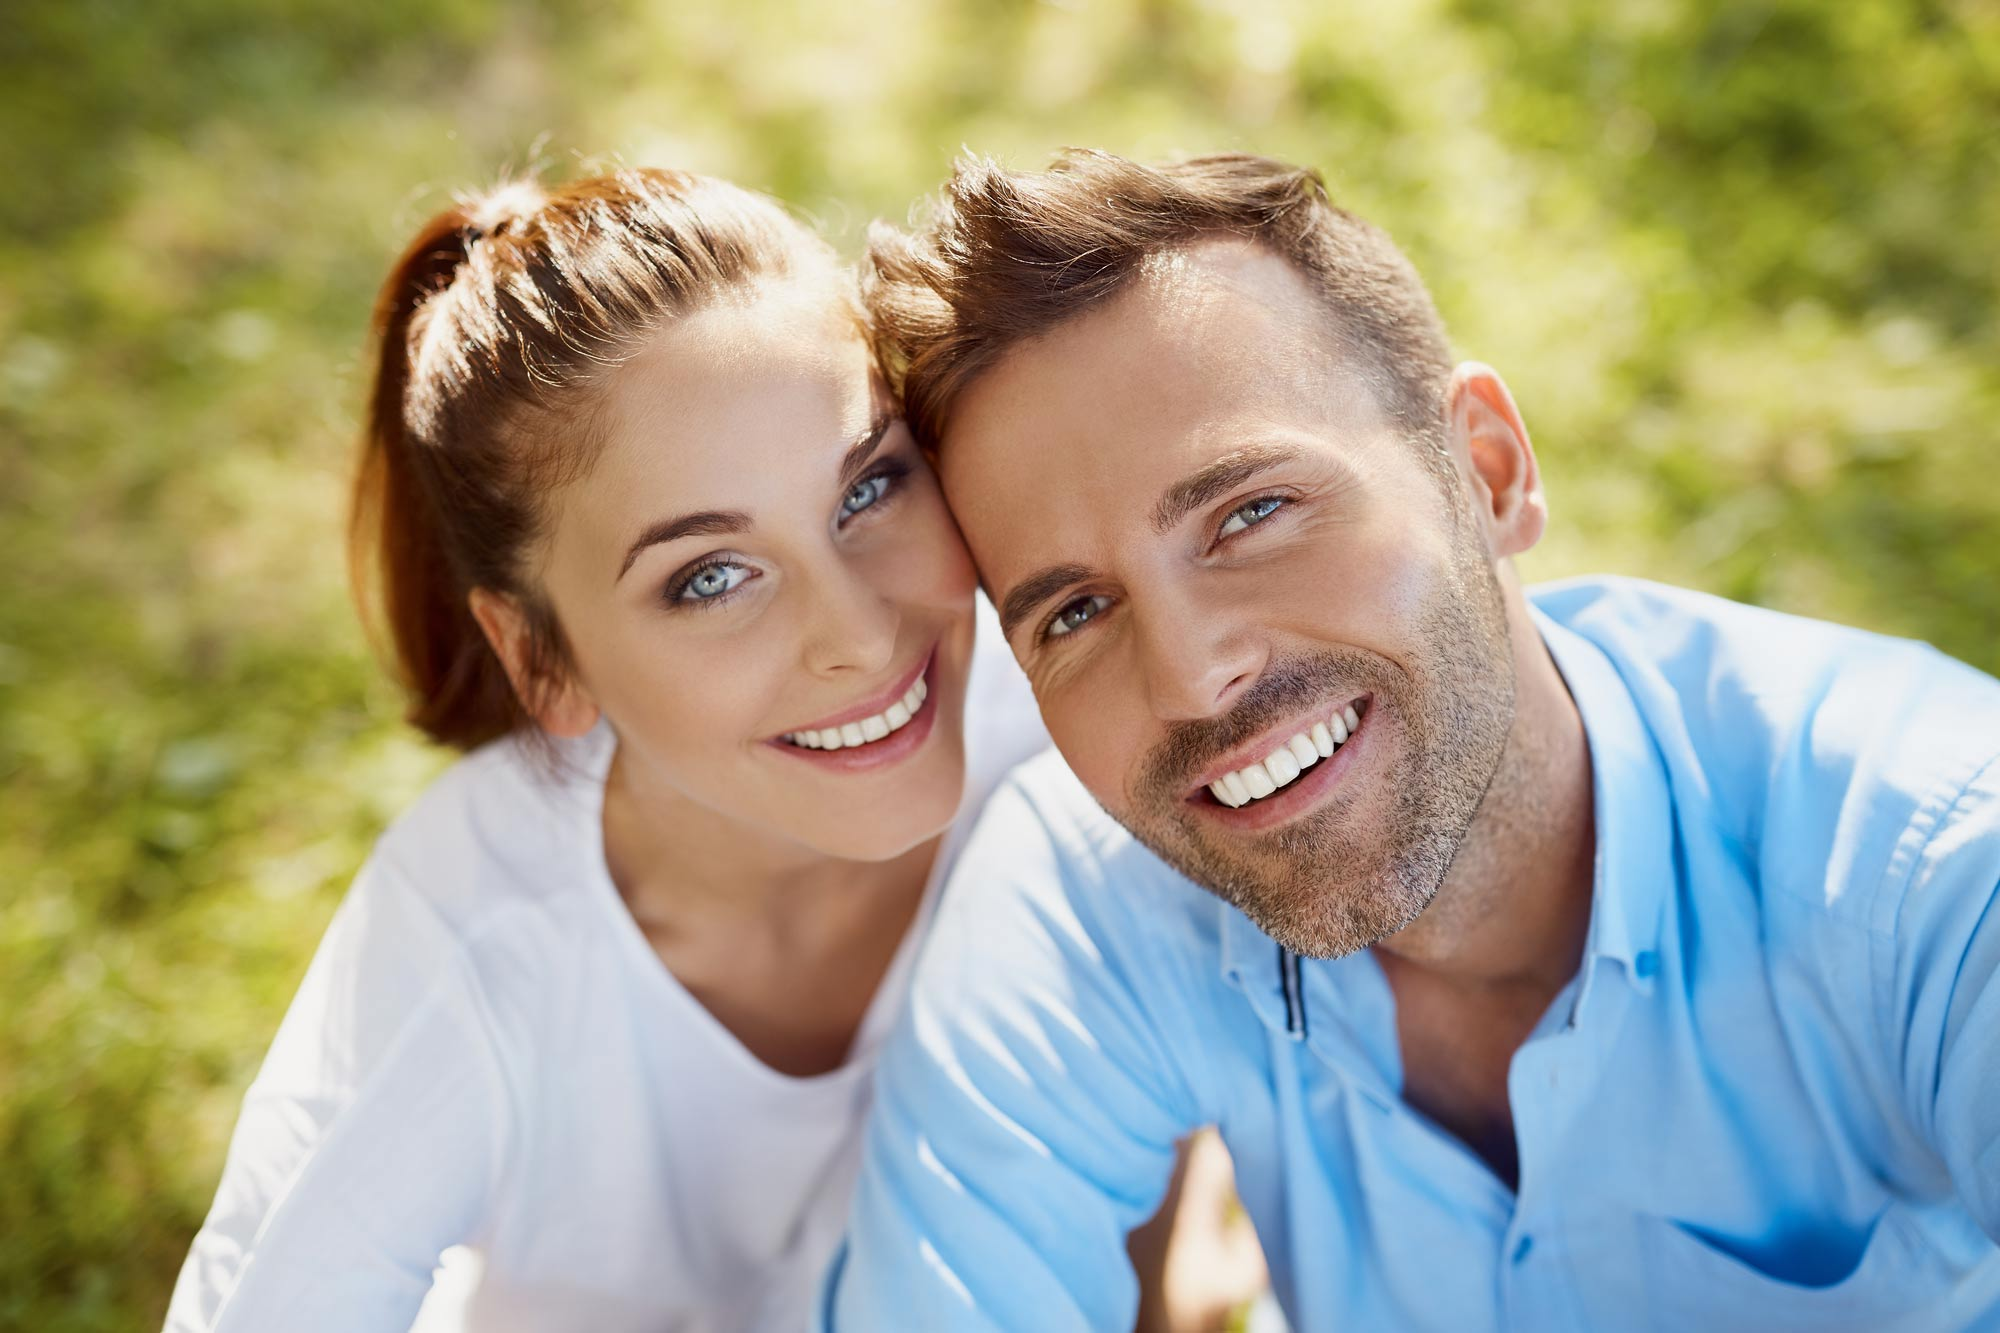 leesburg dentist | dental patient